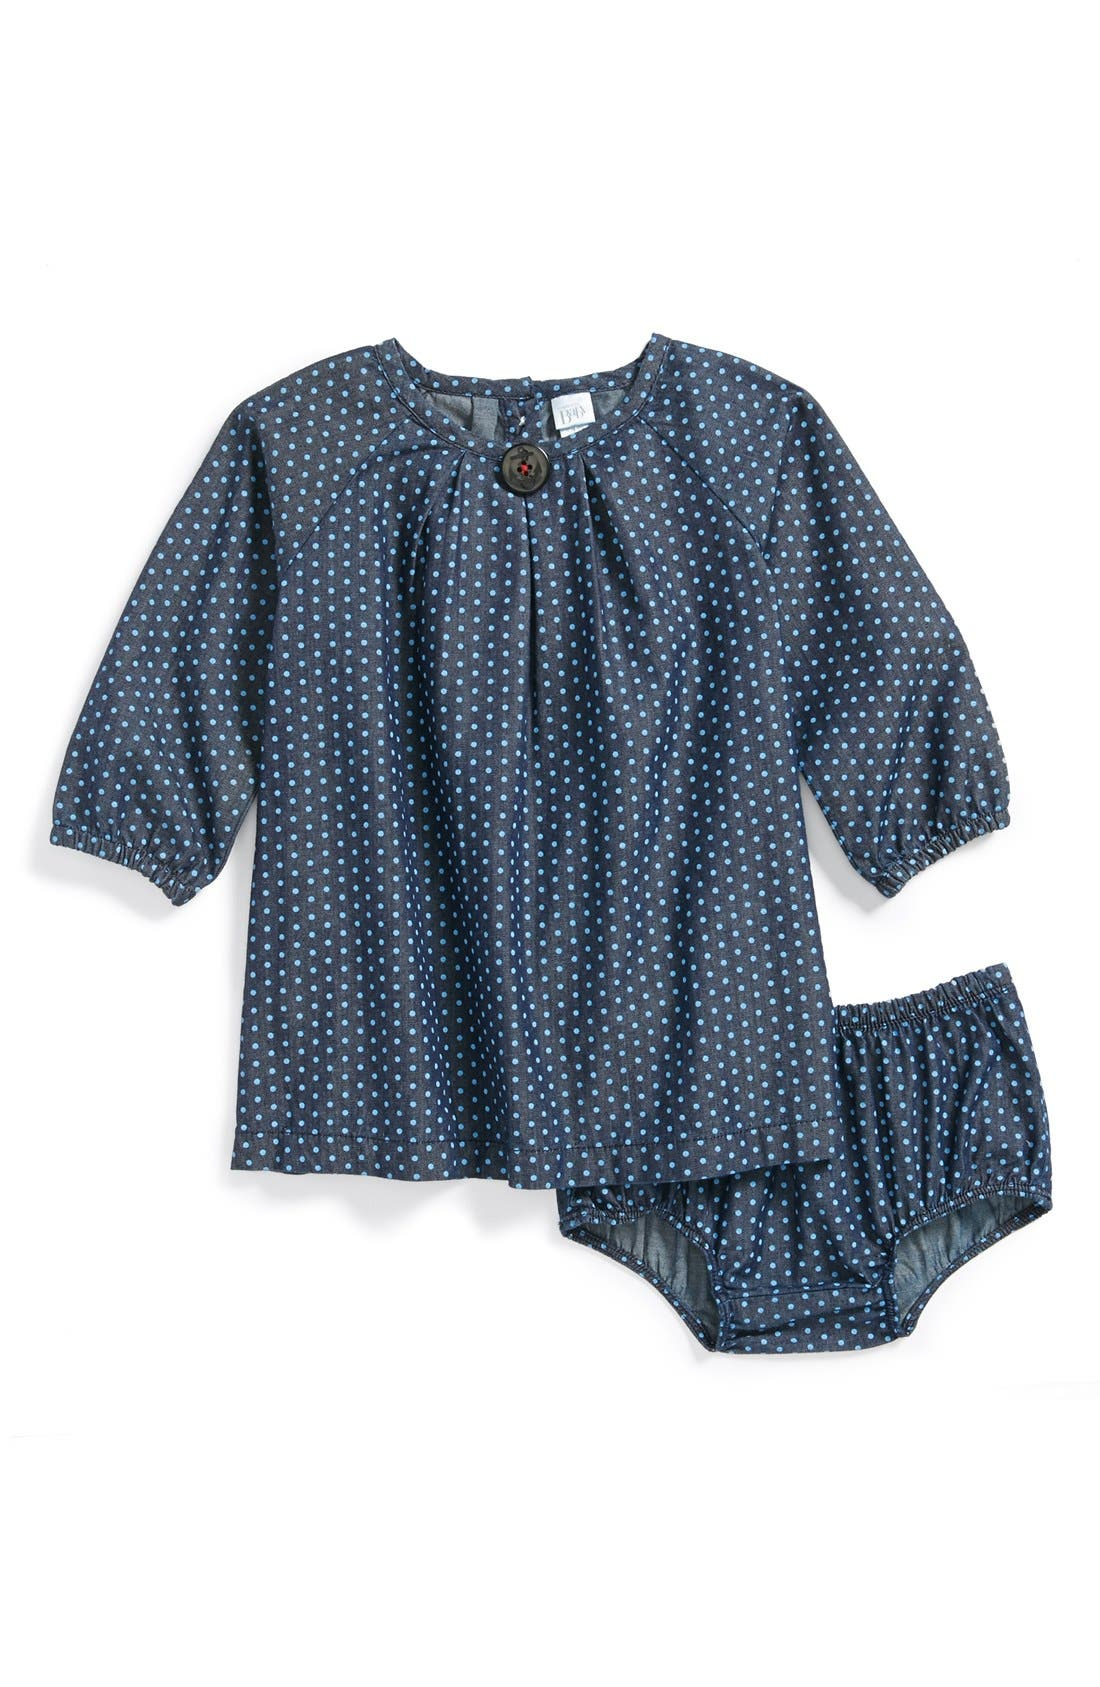 Alternate Image 1 Selected - Nordstrom Baby Chambray Dress & Bloomers (Baby Girls)